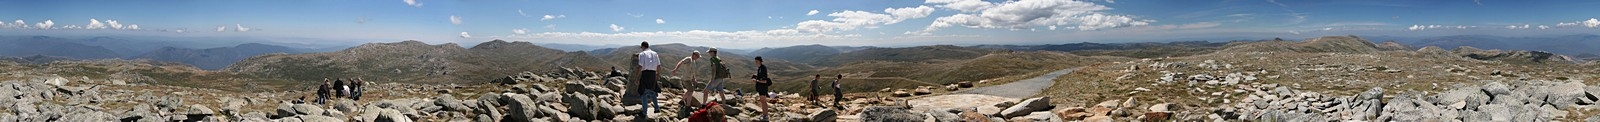 Kosciuszko,Mt. Townsend,highest,mountain,Australia,Mt. Kosciuszko,panorama,summit,seven summits,, photo